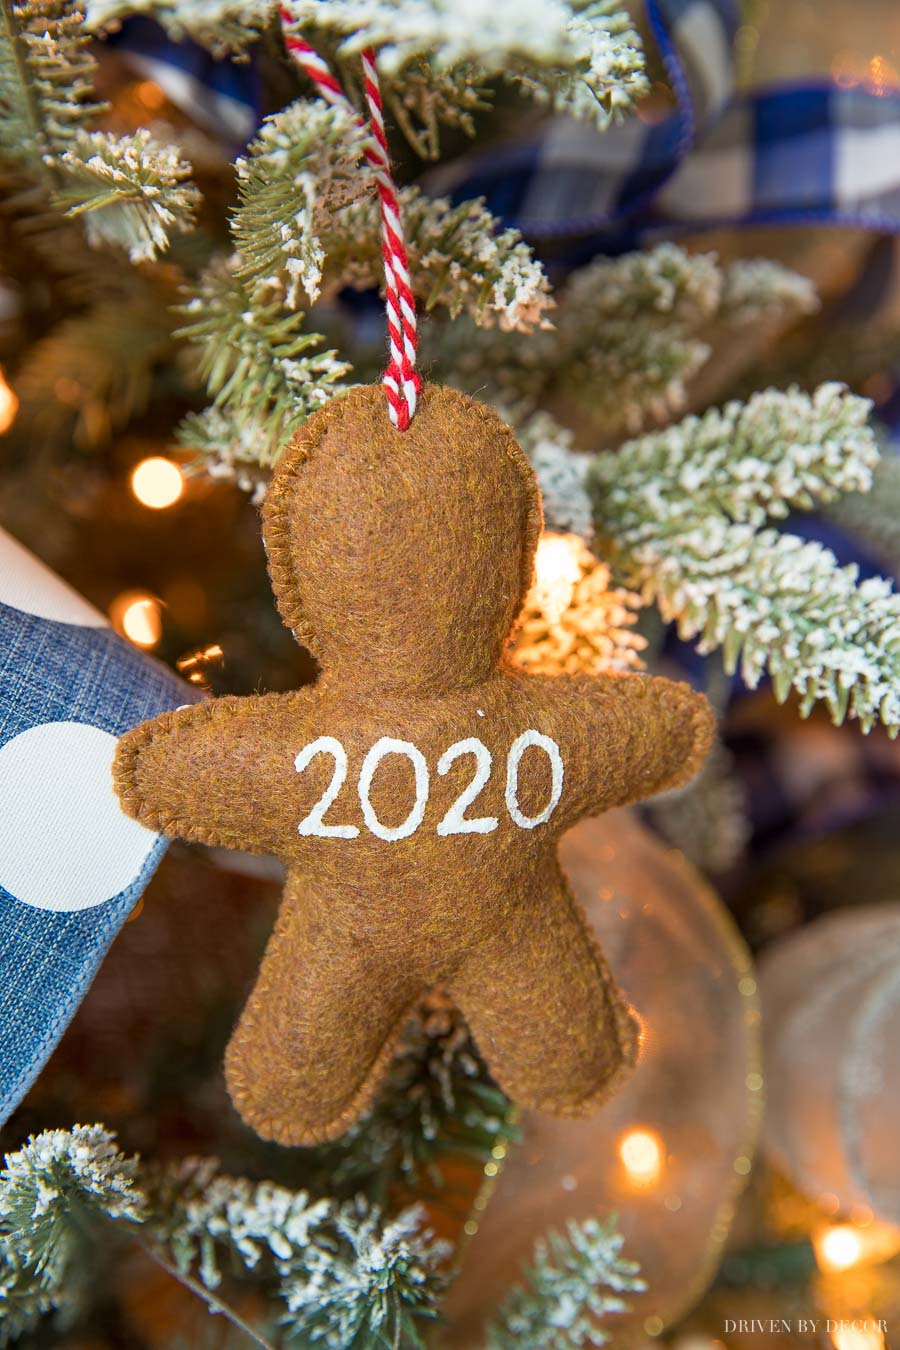 Love this ornament - check out the front of it - so perfect for 2020!